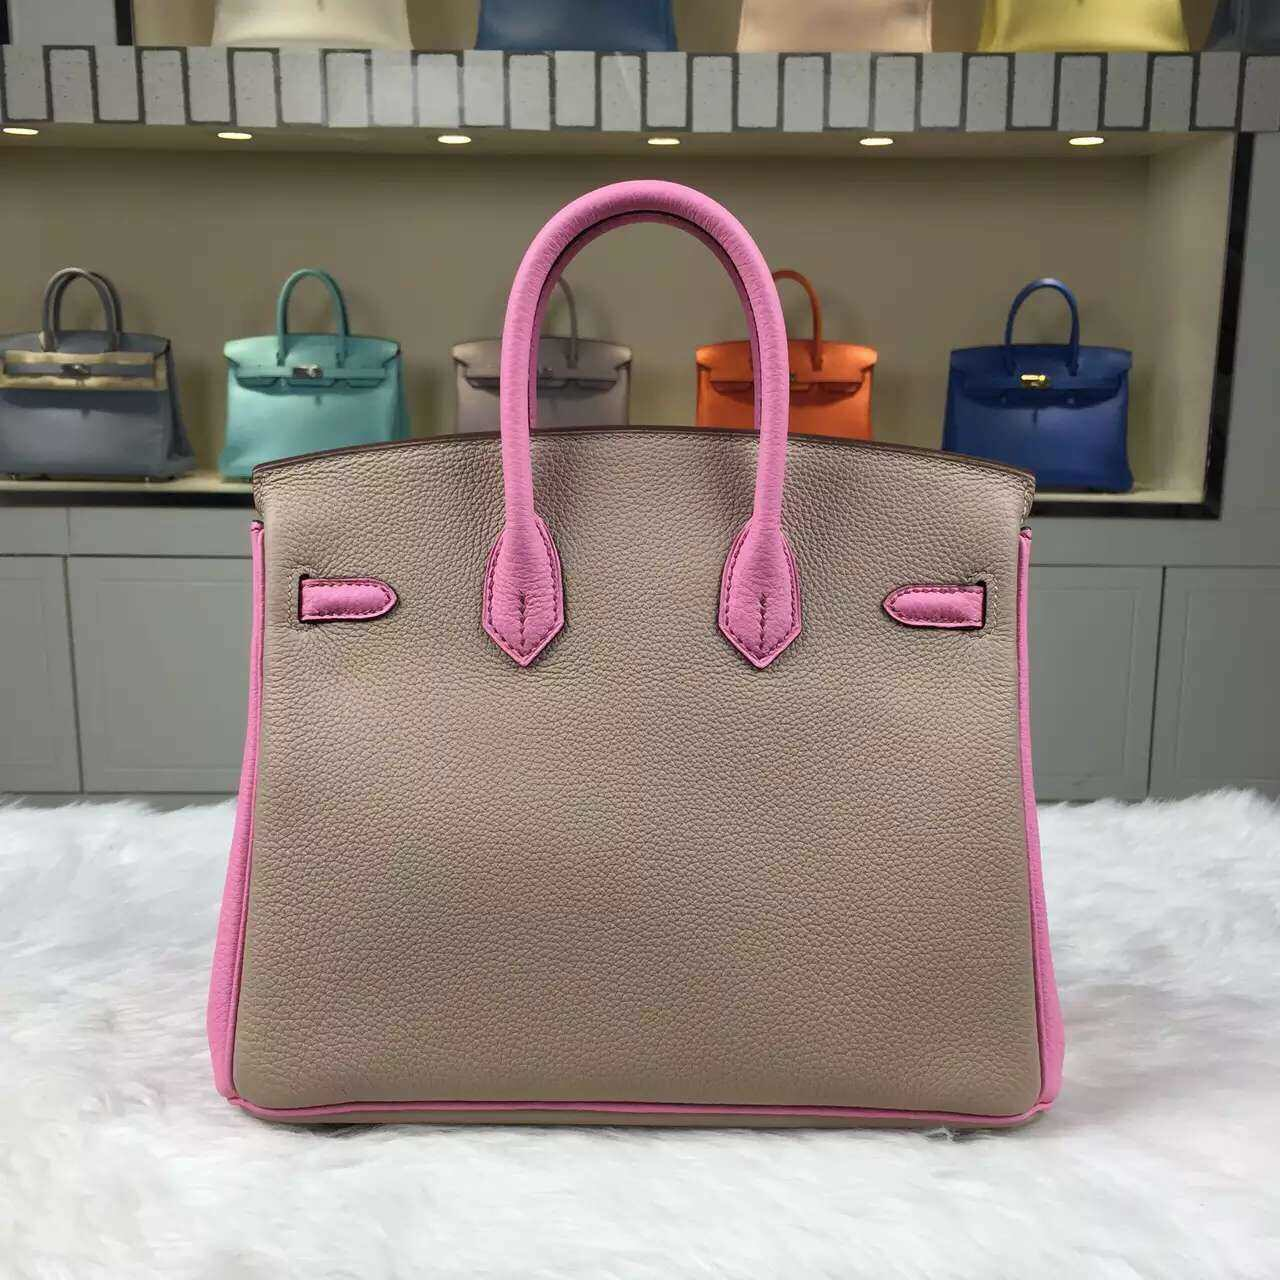 Discount Hermes 1P Diamond Grey & 5P Rose Sakura Togo Leather Birkin25